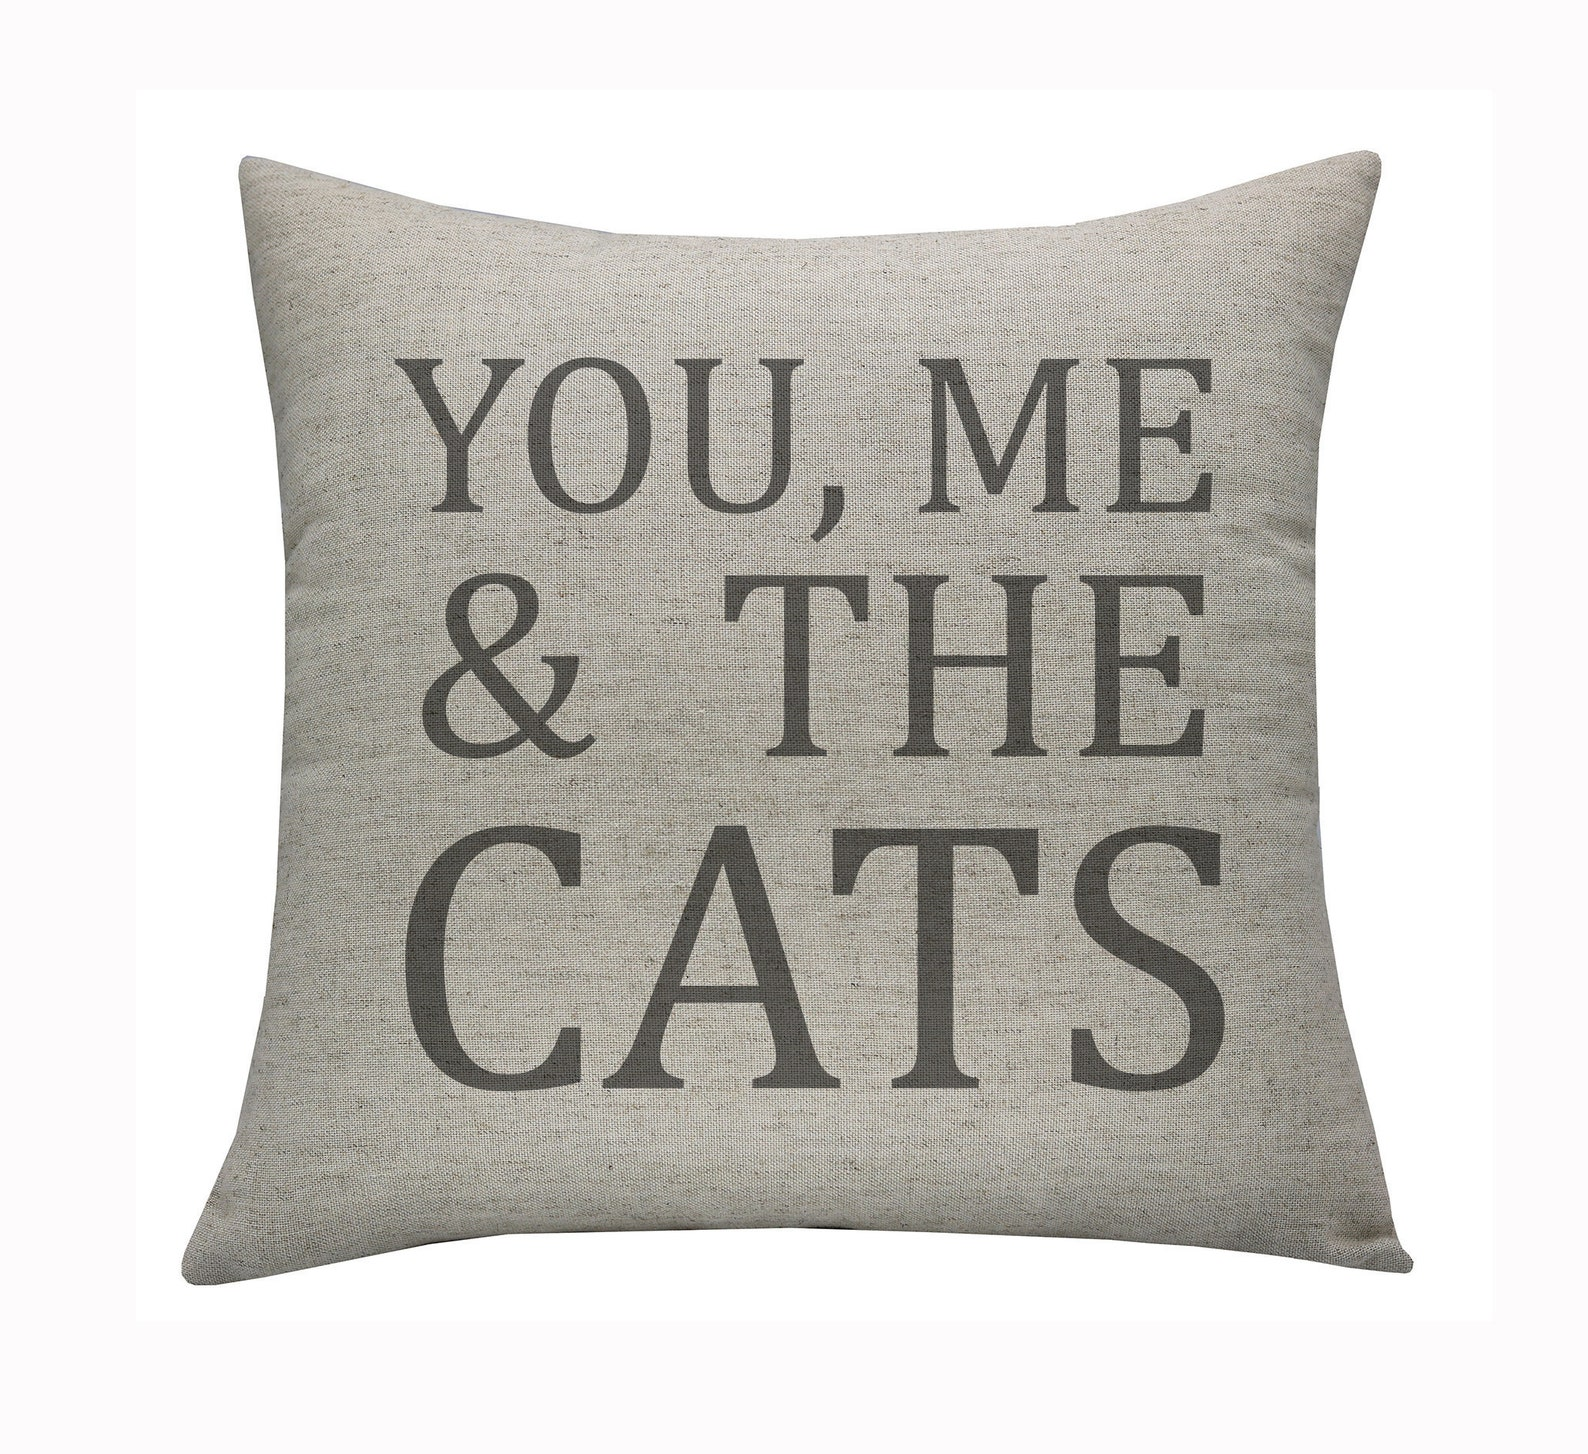 You, Me & the Cats Embroidered Pillowcase